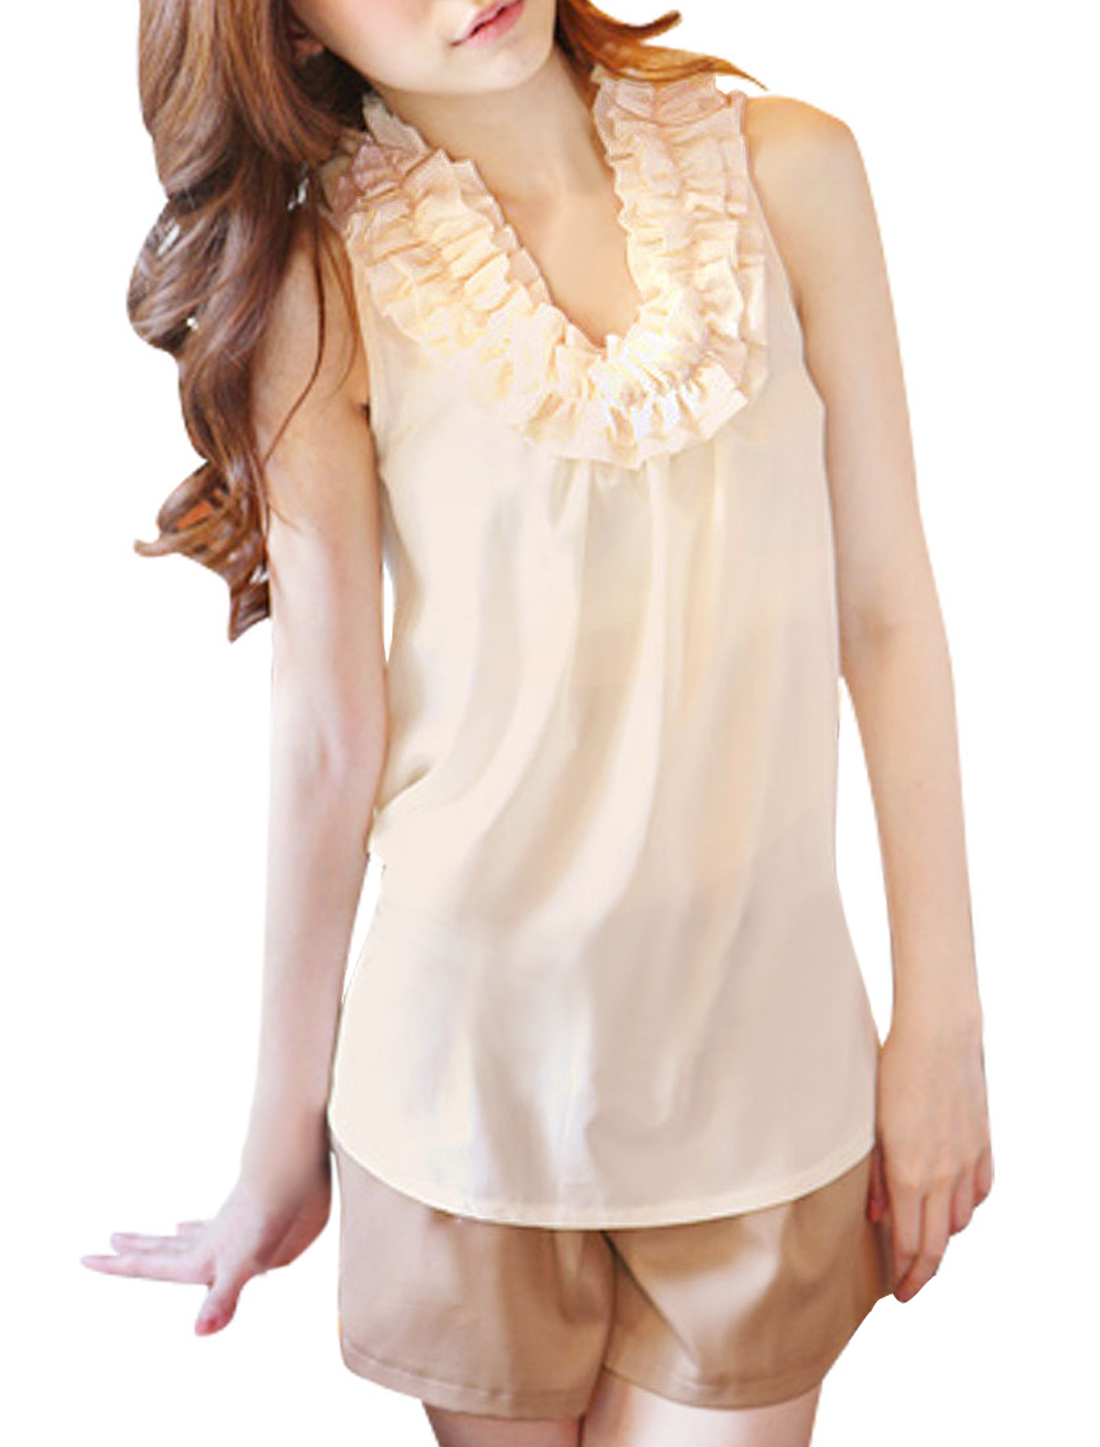 Women Scoop Neck Sleeveless Ruffled Pullover Chiffon Top Beige S